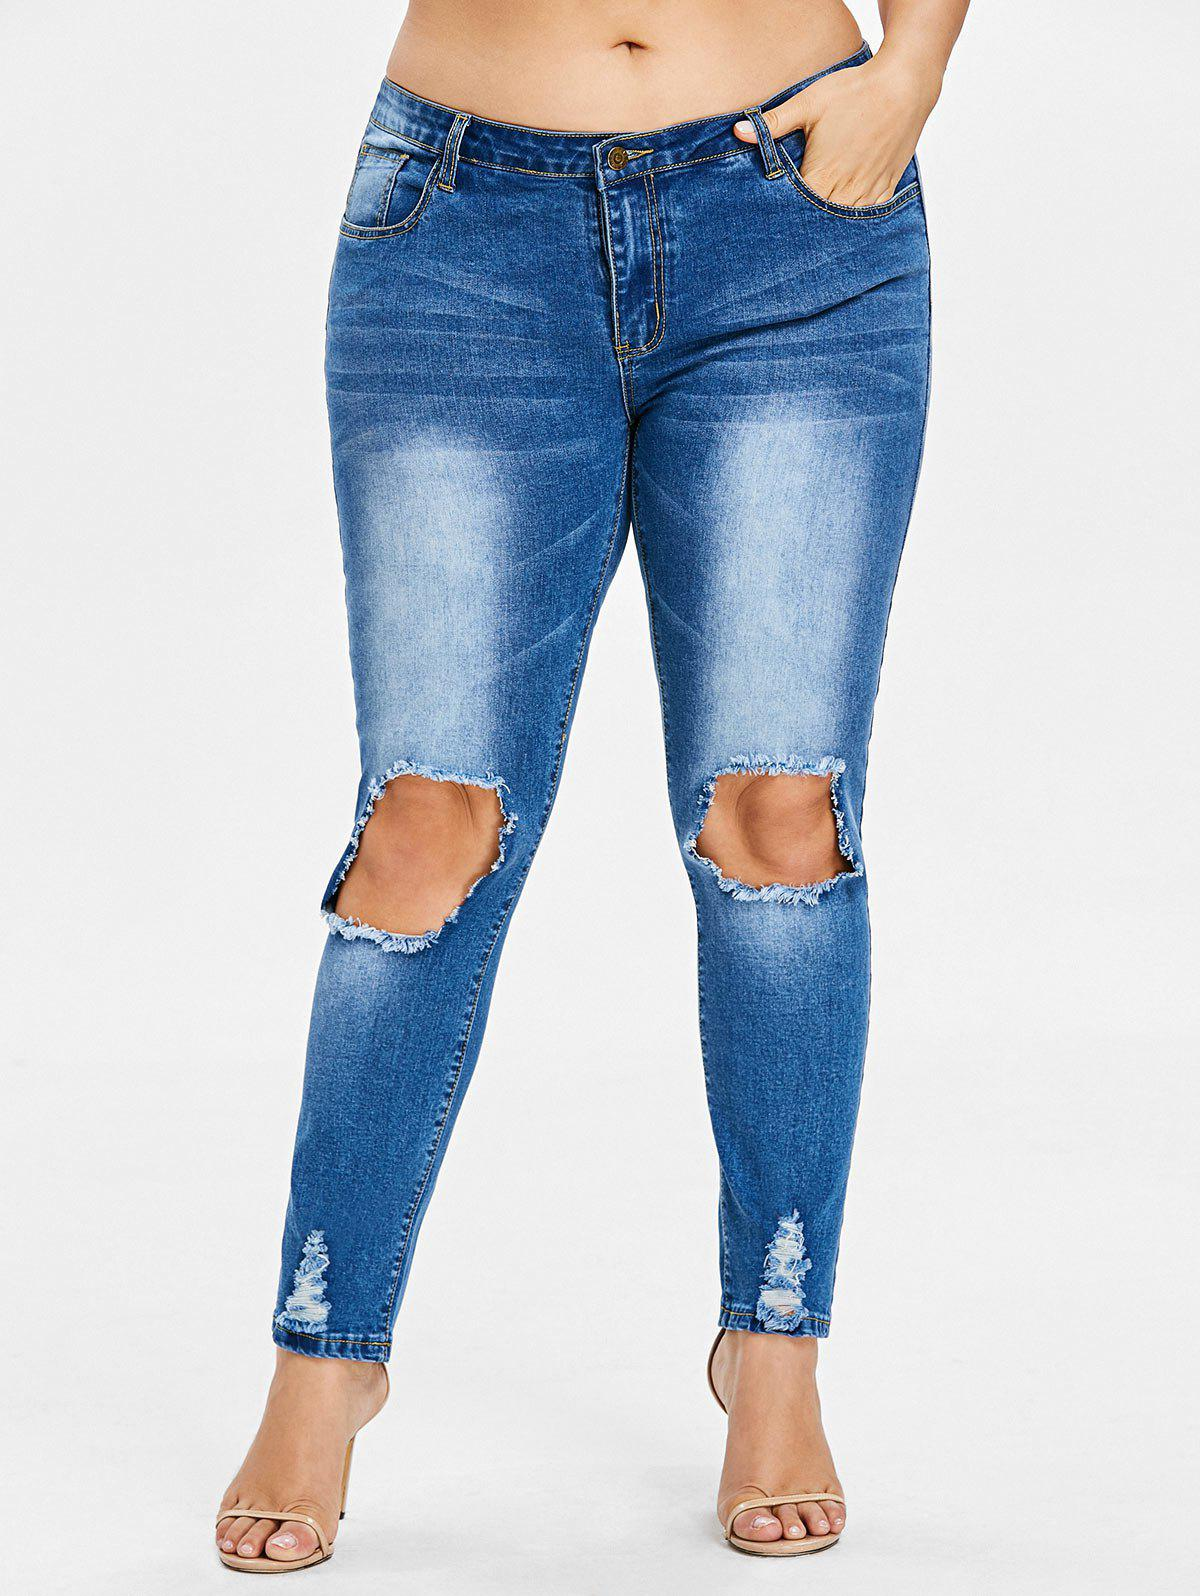 Affordable Rosegal Plus Size Threadbare Holes Skinny Jeans